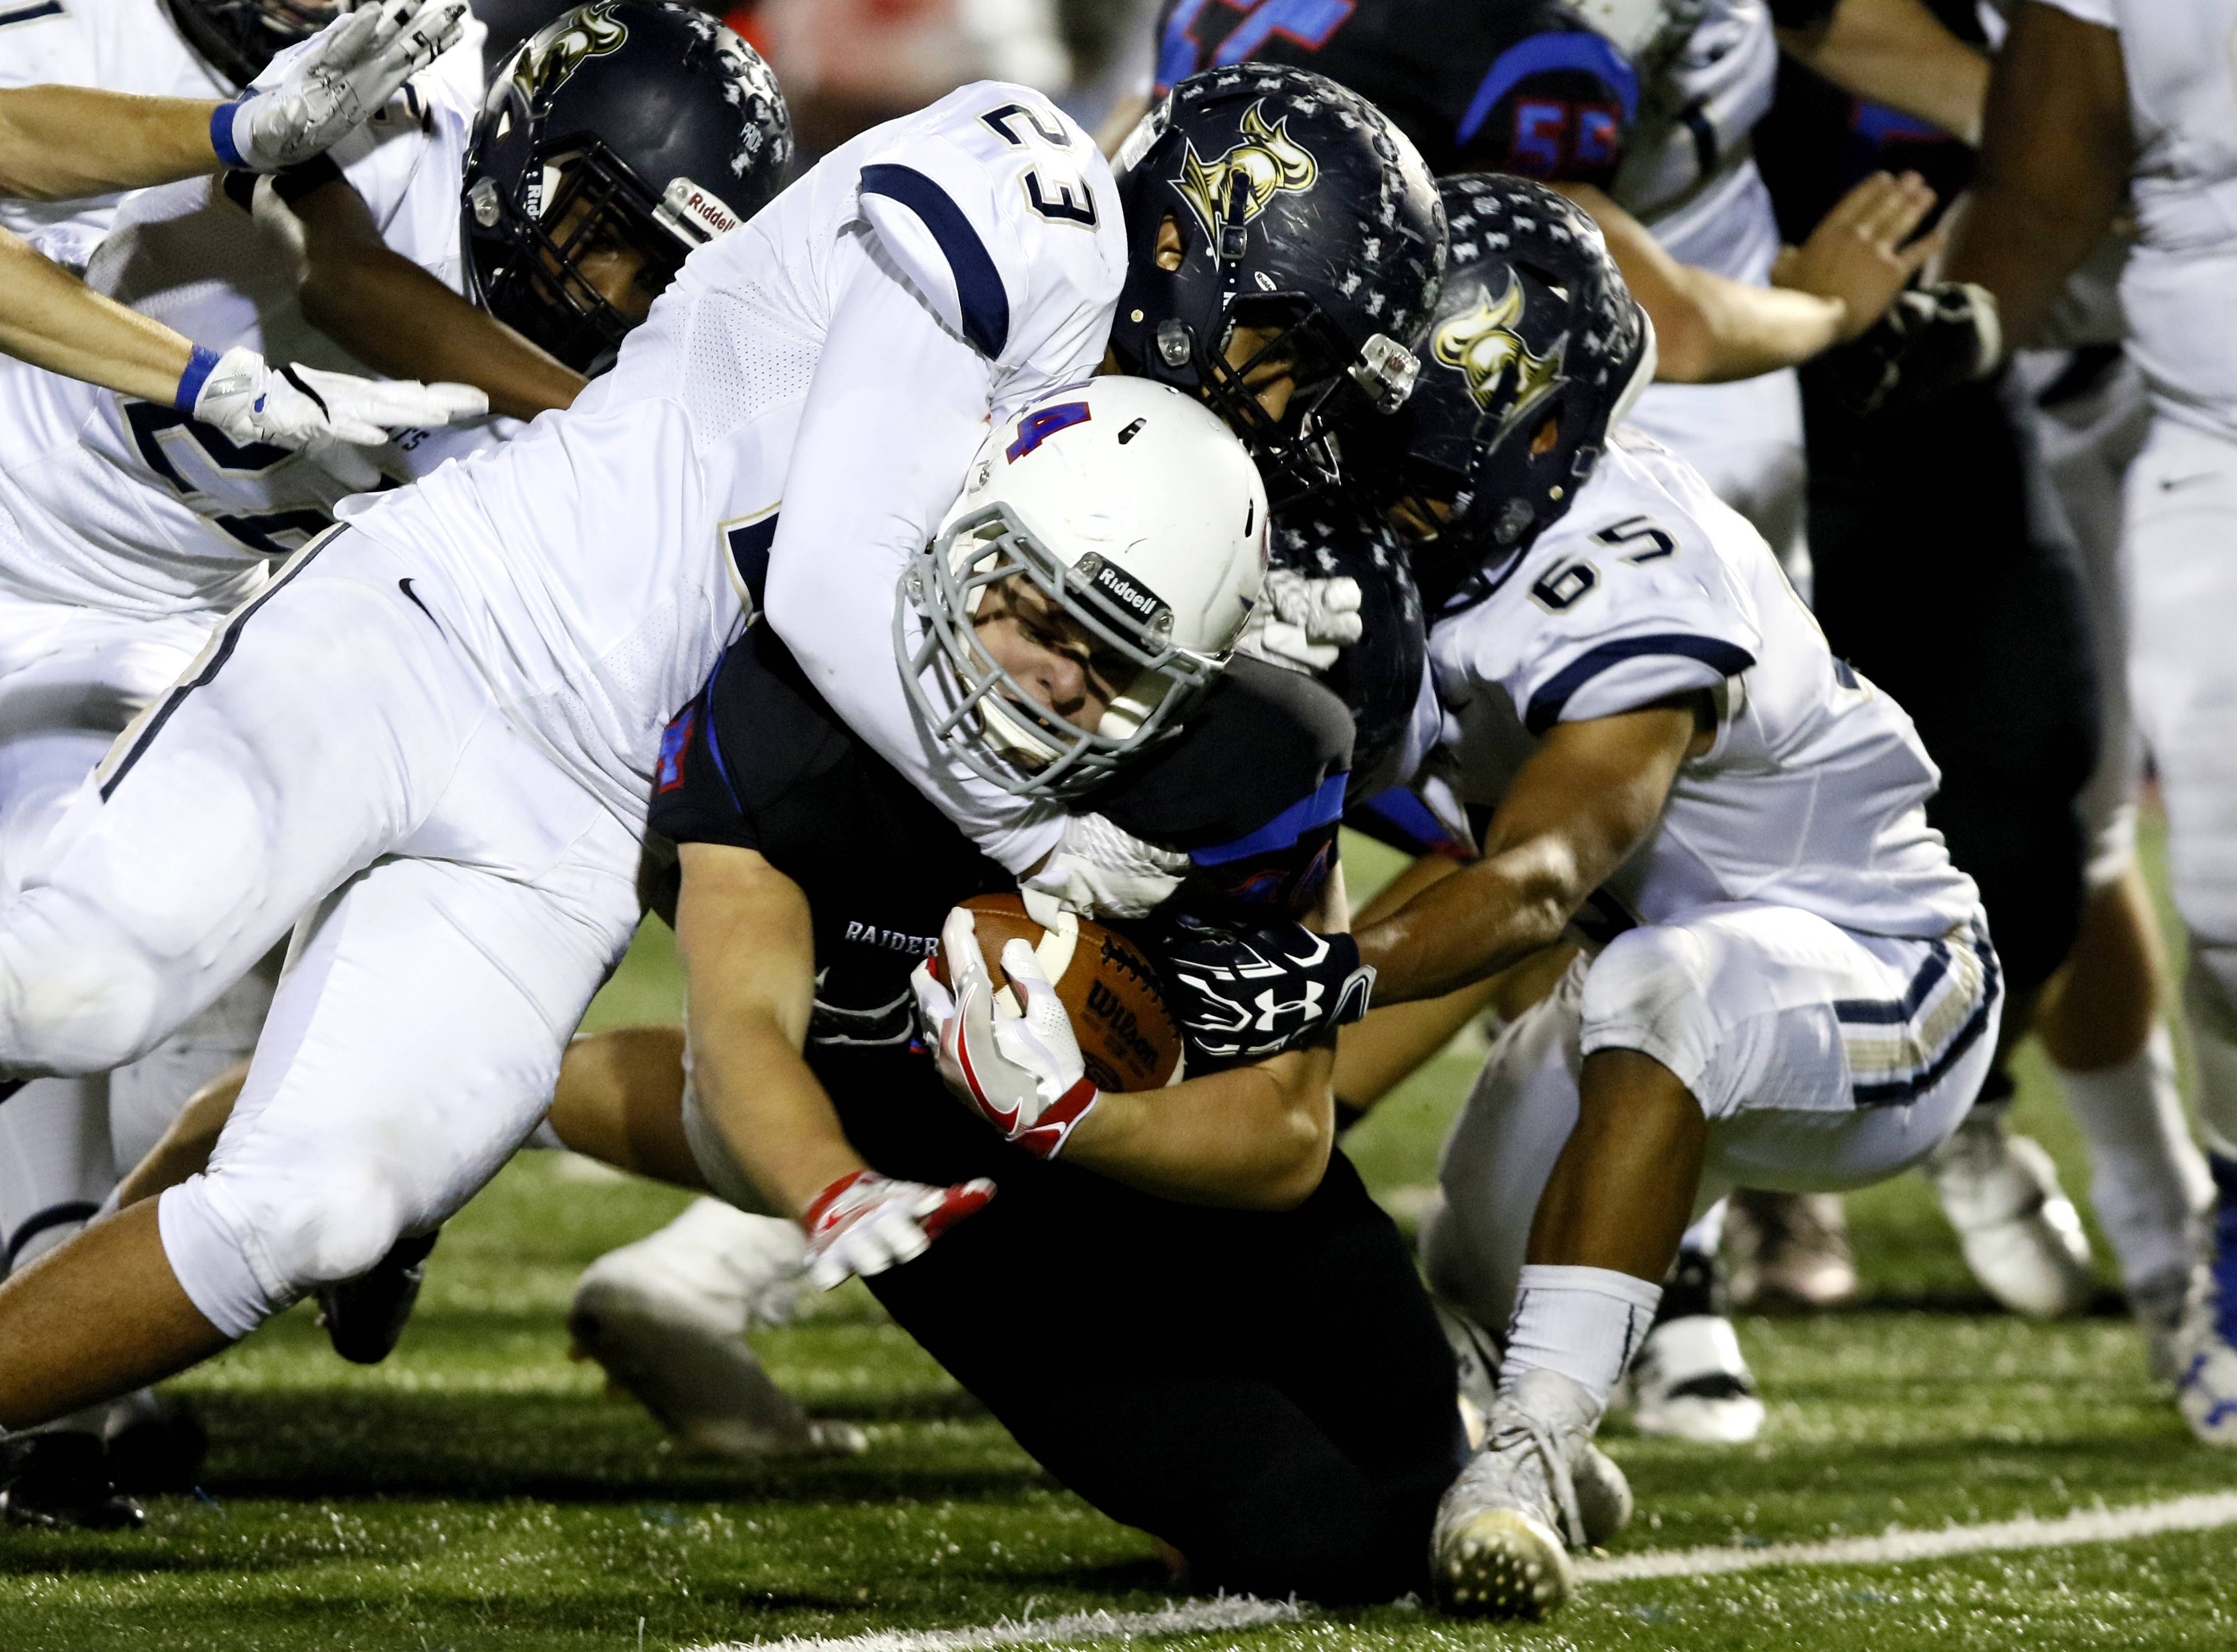 Glenbard South's Sean Cooke is tackled by IC Catholic Prep's Chris Johnson (23) and Kemon Reese (65), Friday, in Glen Ellyn.